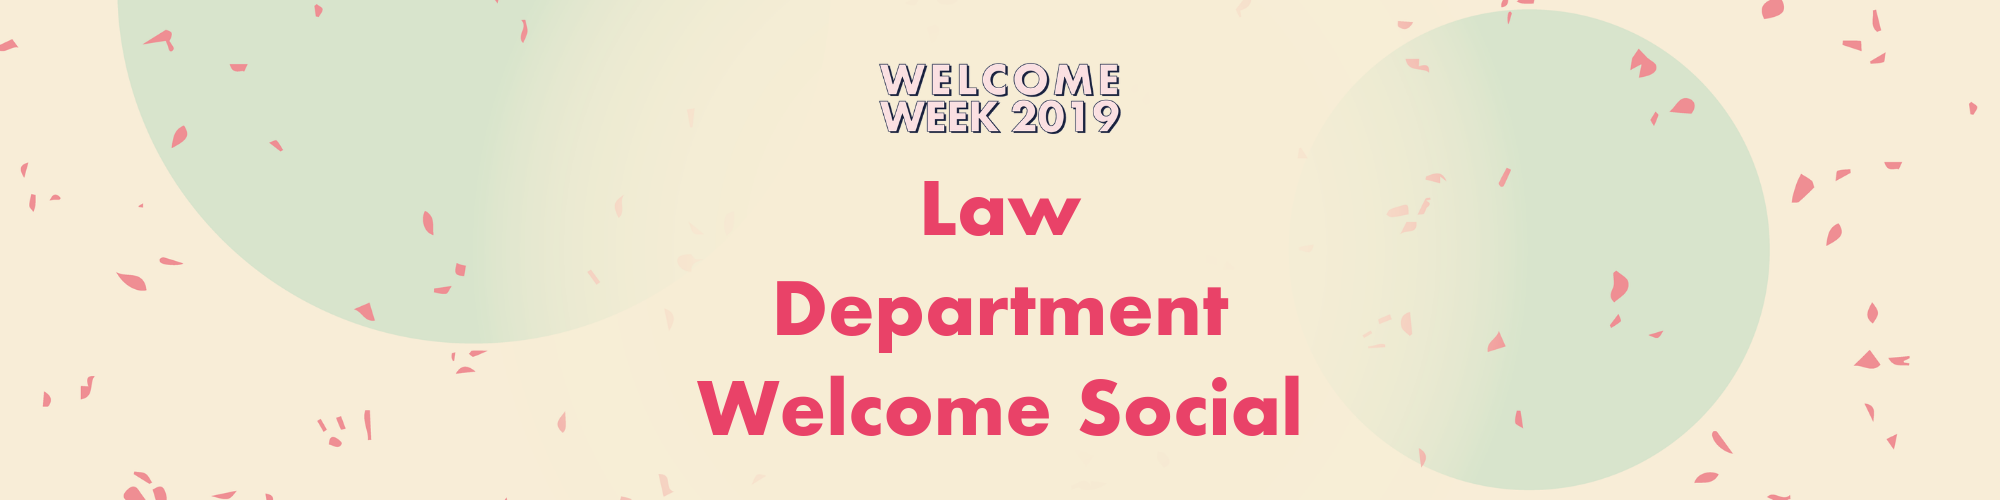 Law Department Welcome Social